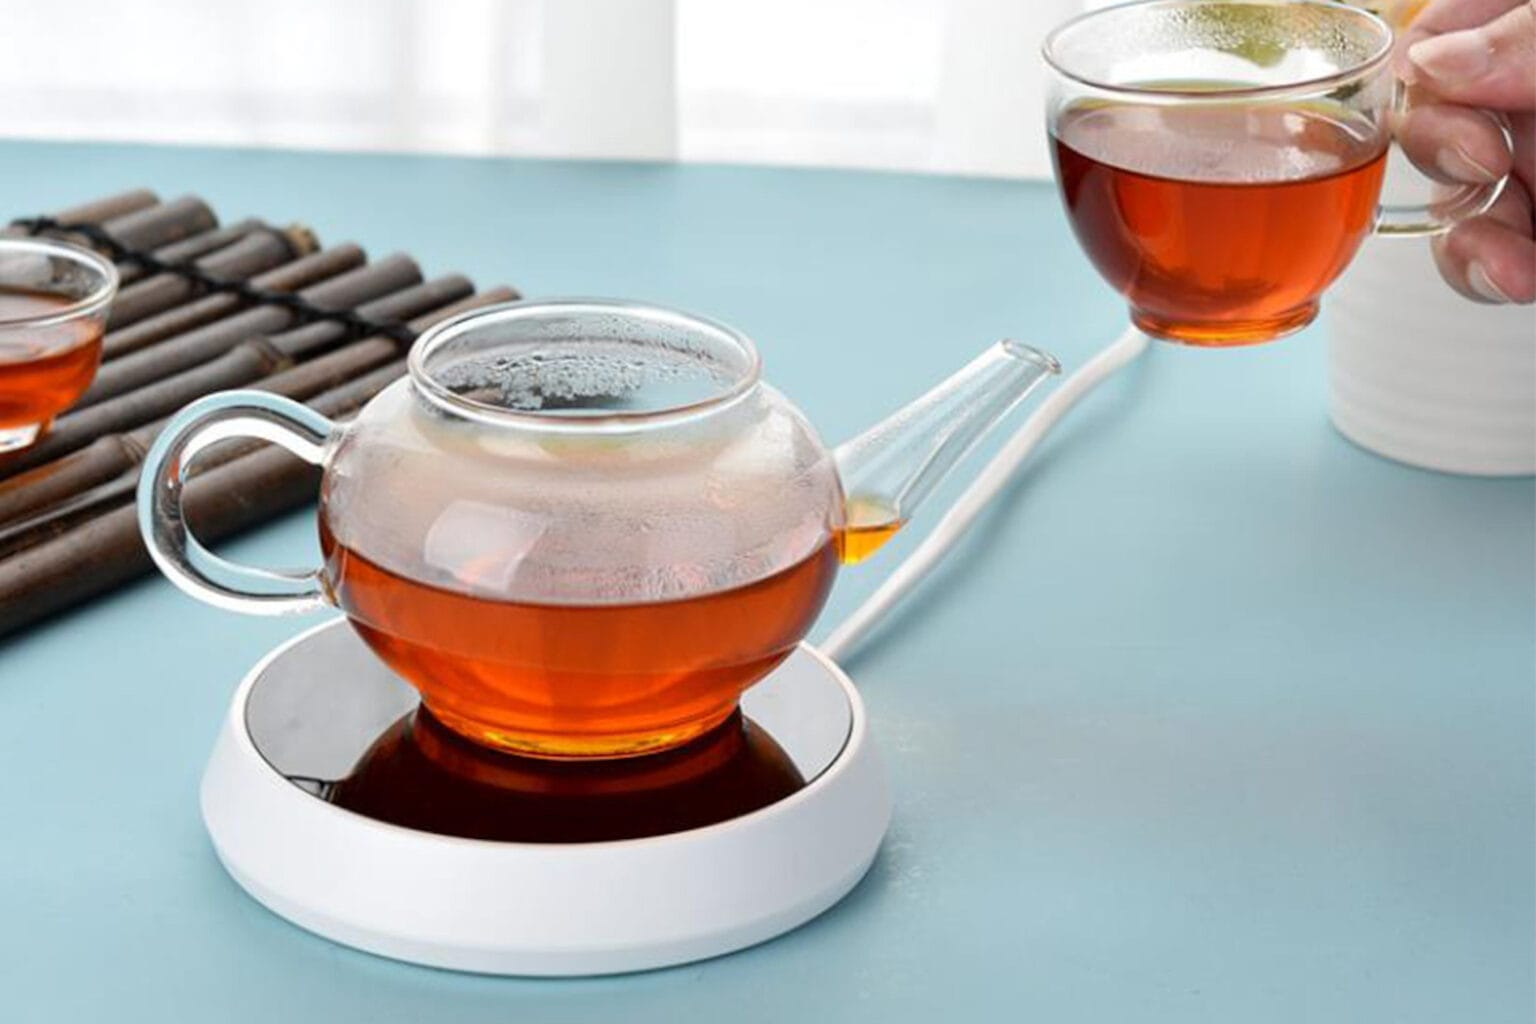 This electric mug warmer uses smart technology to keep your beverage of choice at the perfect temperature.